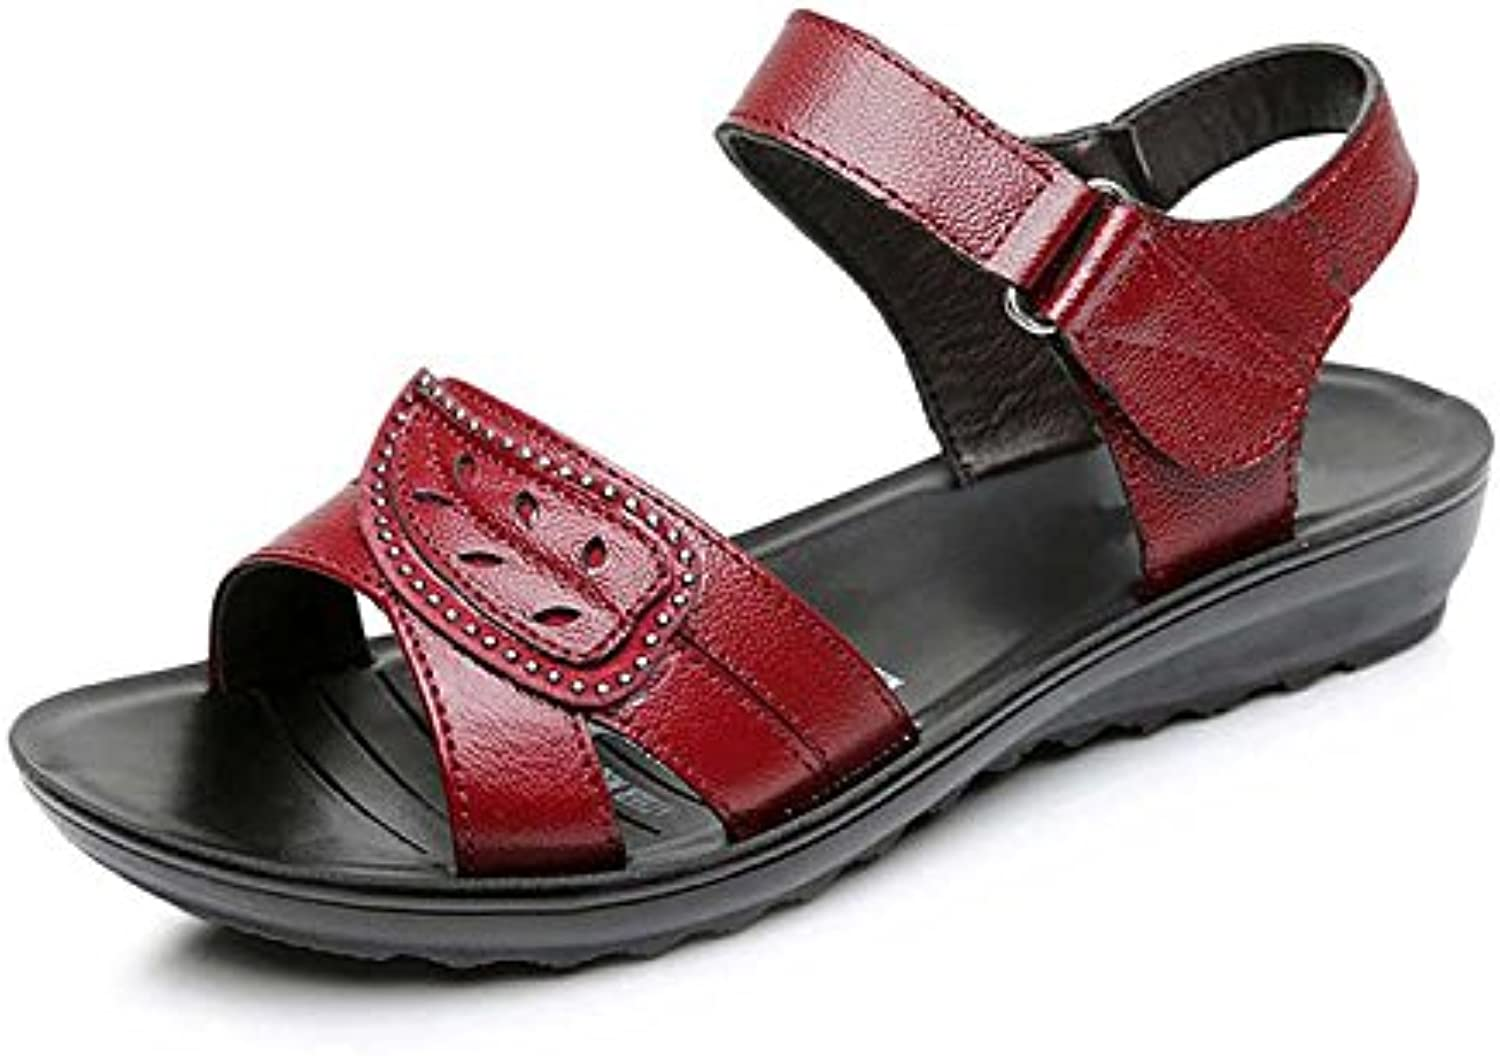 Dahanyi Stylish Summer New Genuine Leather Wedges Sandals Women shoes Black Red color 35-41 Size Back Strap